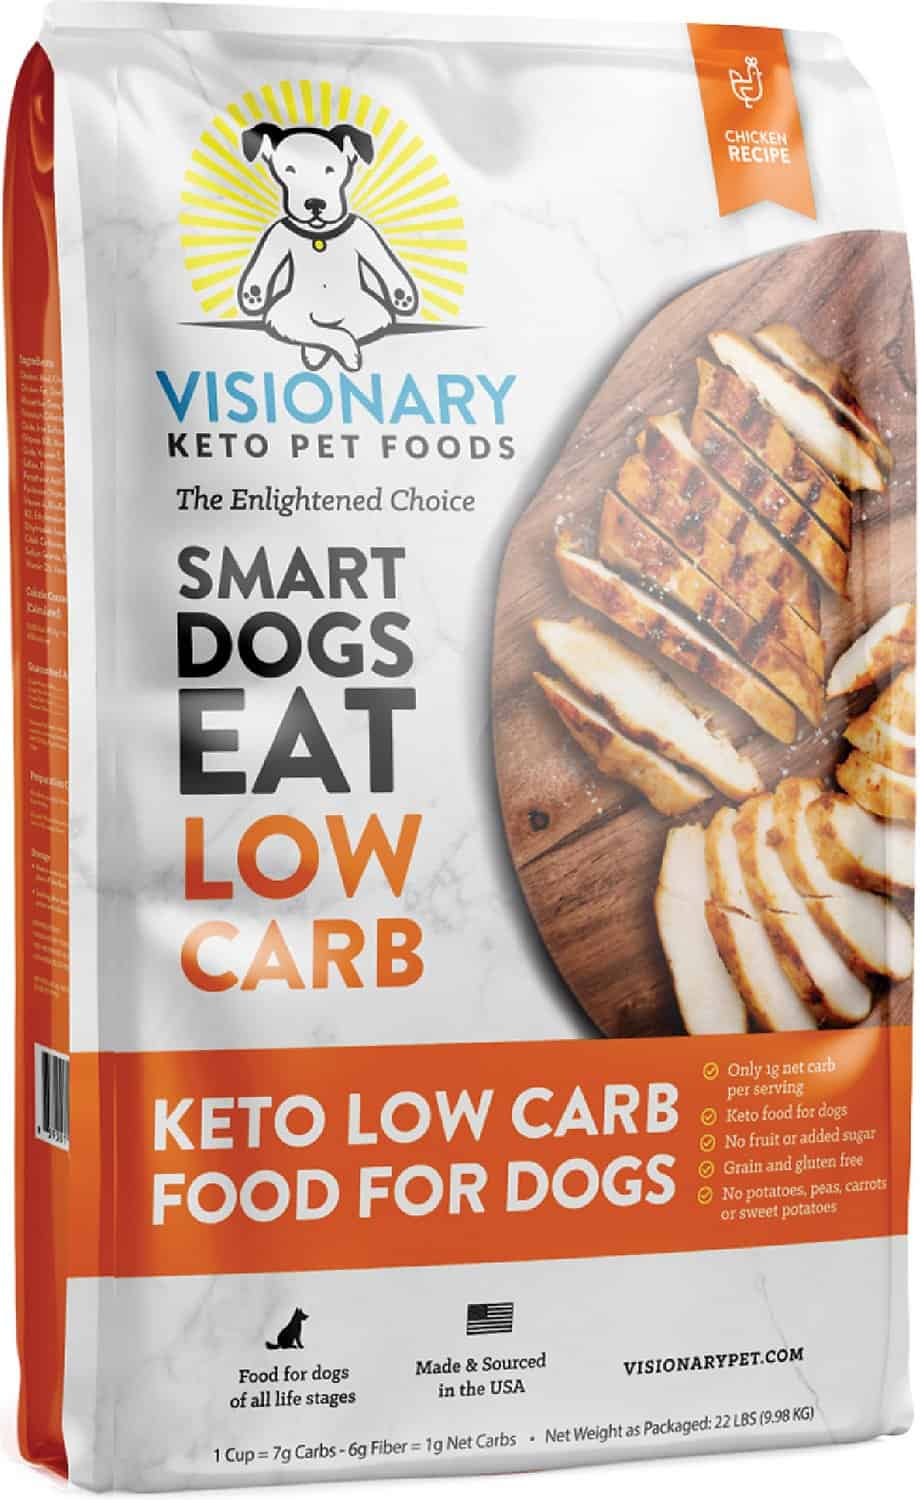 Valiant Dog Food (Now Visionary): [year] Reviews & Coupons 9